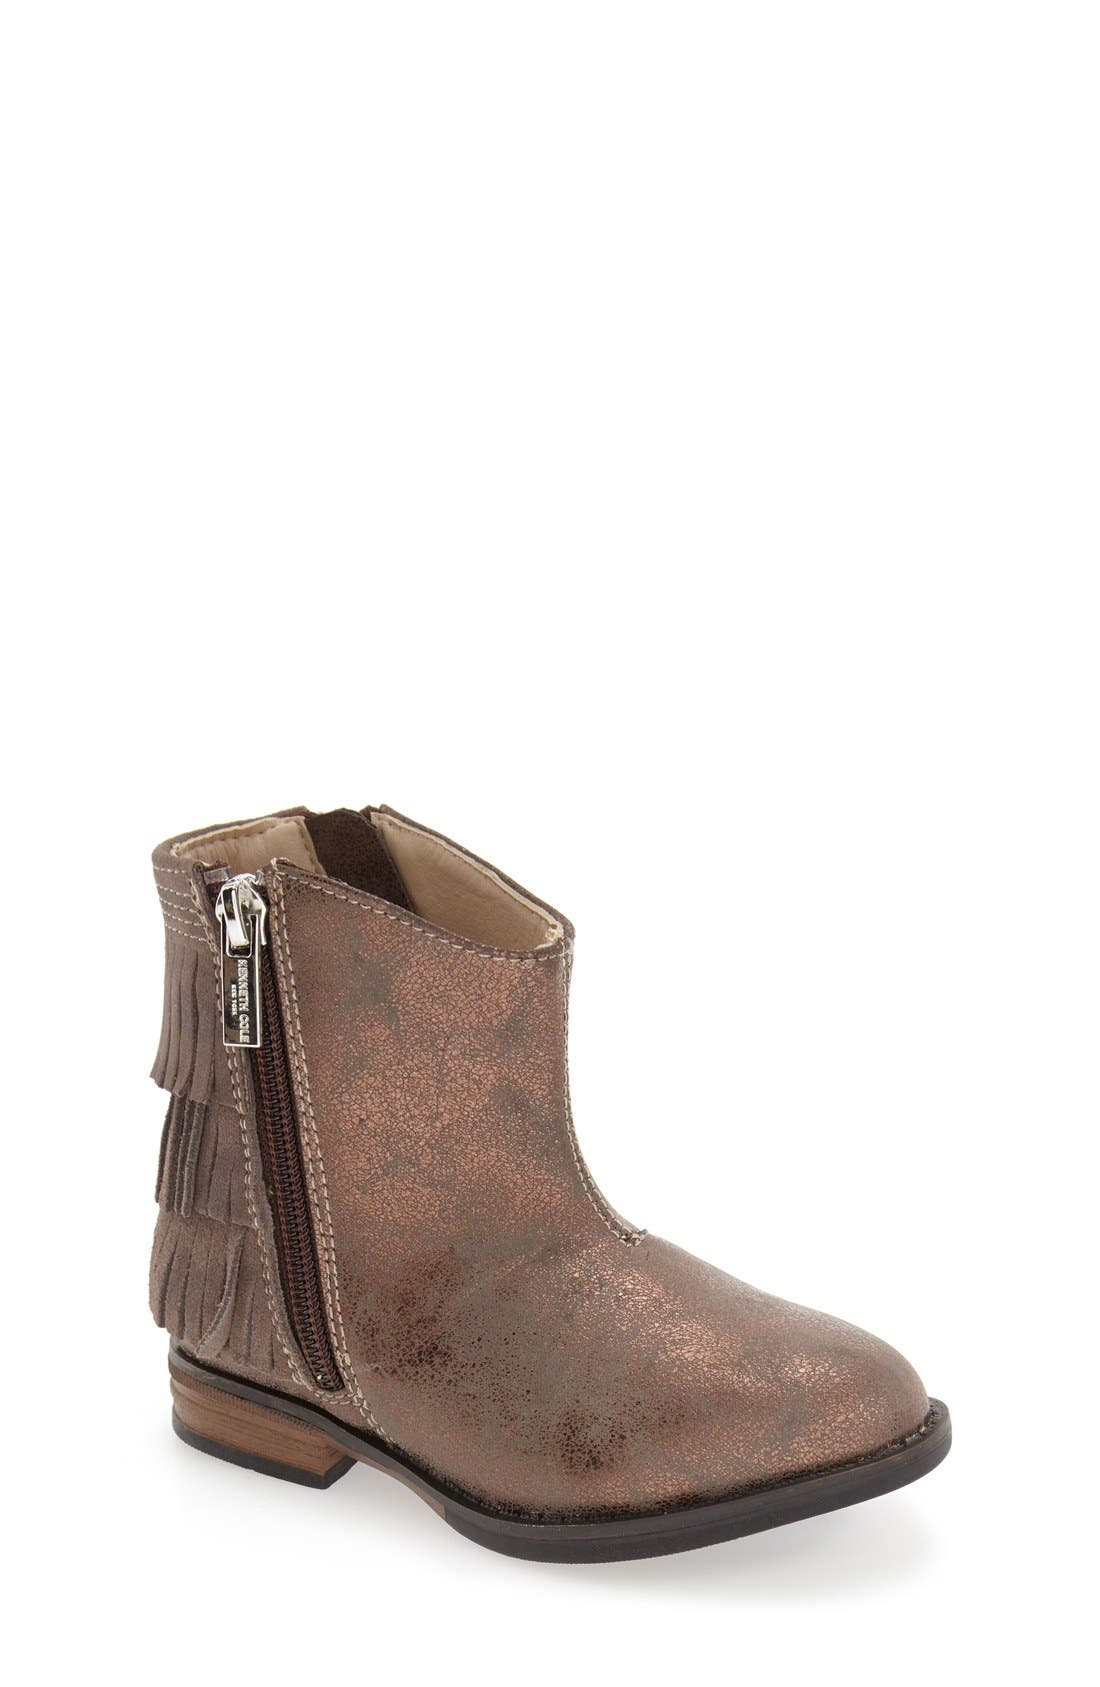 Main Image - Kenneth Cole New York 'Downtown' Tiered Fringe Bootie (Toddler, Little Kid & Big Kid)